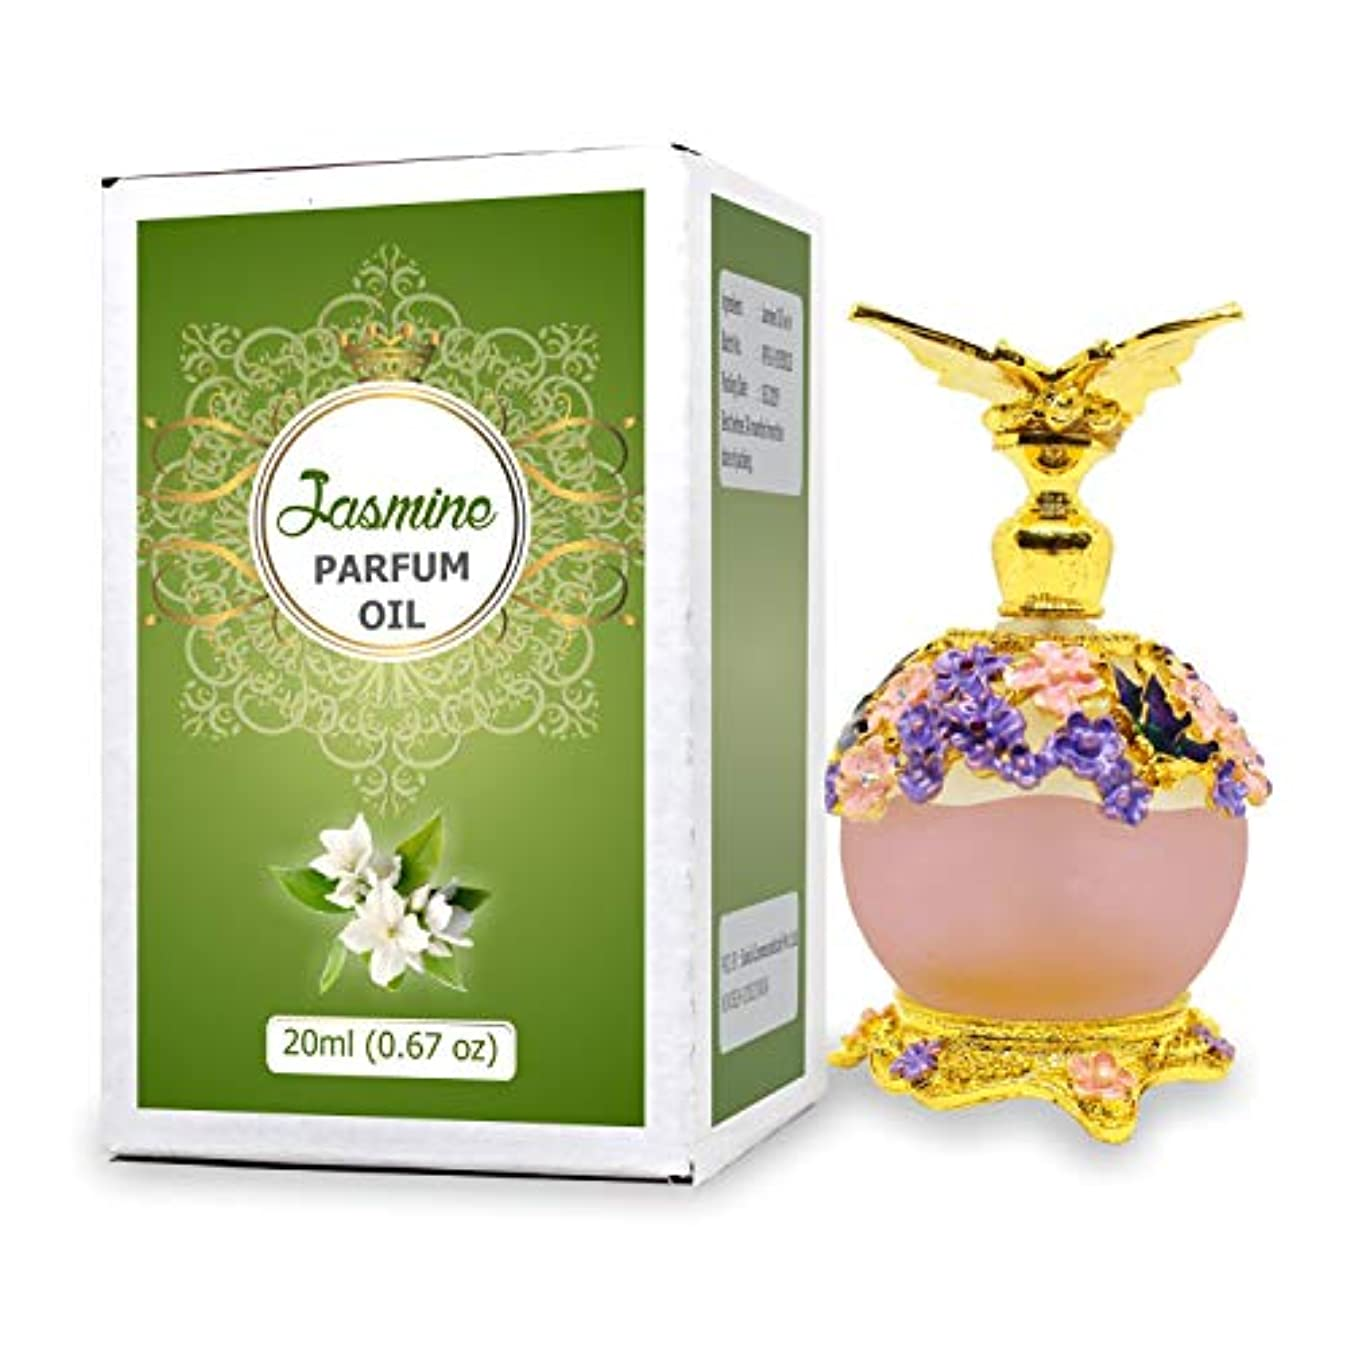 研磨剤共和党ミニJasmine Parfum Oil - Alcohol Free Perfume Oil - Long Lasting Jasmine Fragrance For Women - 20 ML